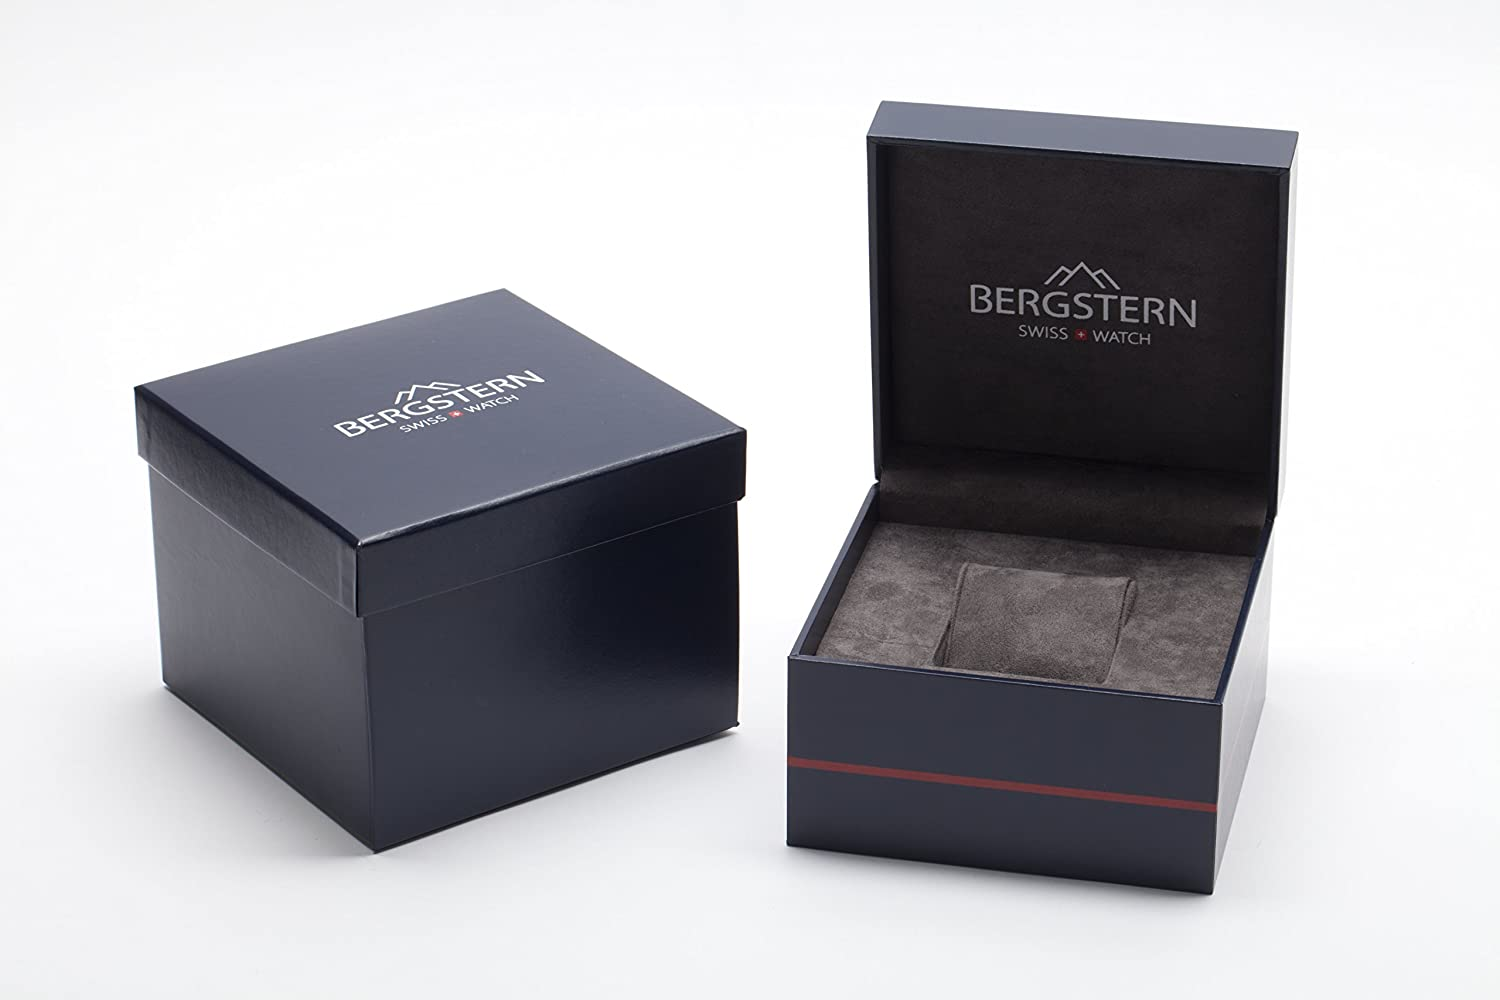 ARMBANDUHR MEN'S COLLECTION HARMONY BERGSTERN B008G061 whatch SWISS MADE hoher QualitÄt MADE IN SVIZZERA.Cinturino